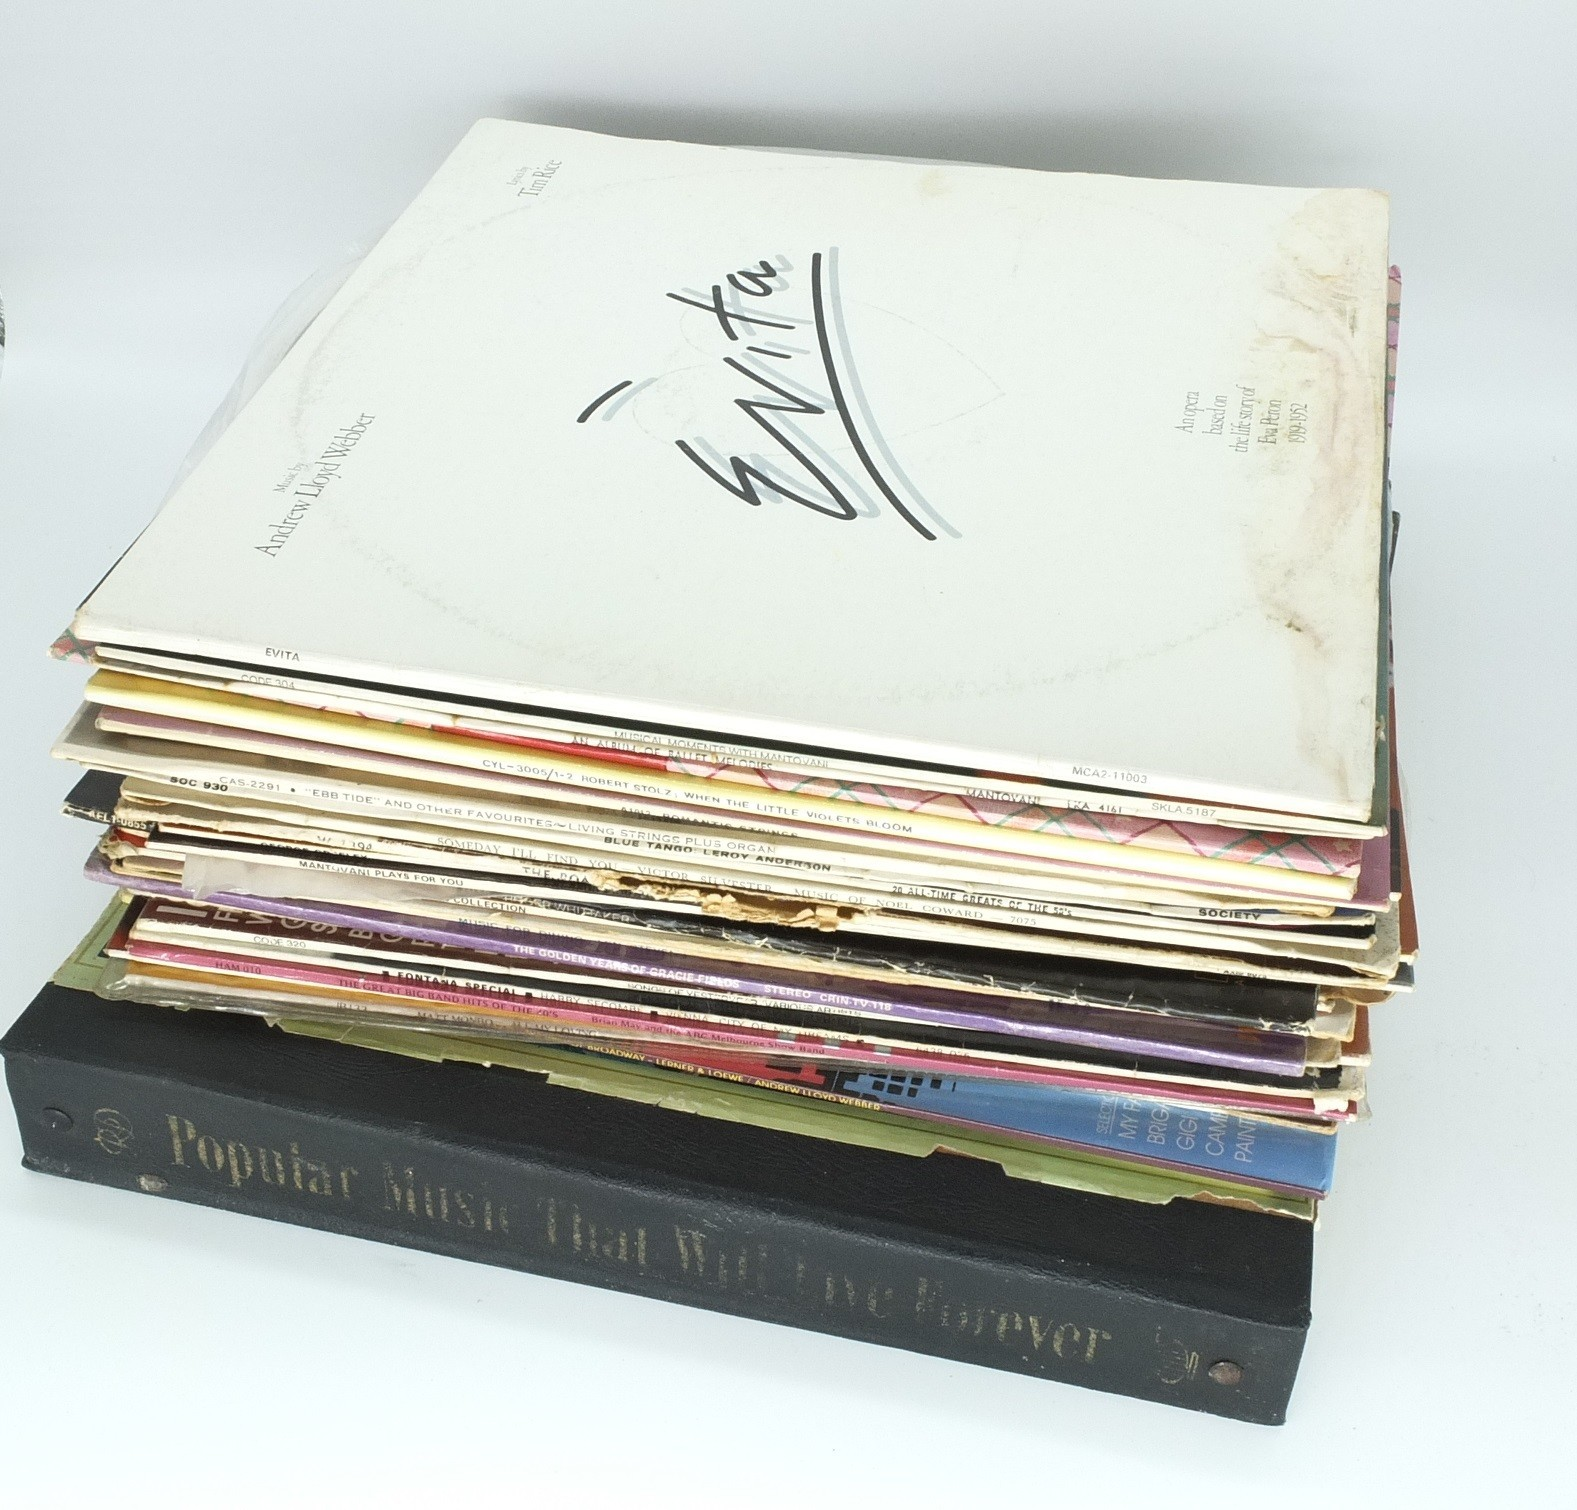 'Group of Records, Including Evita, King and I, When Little Violets Bloom, and More '